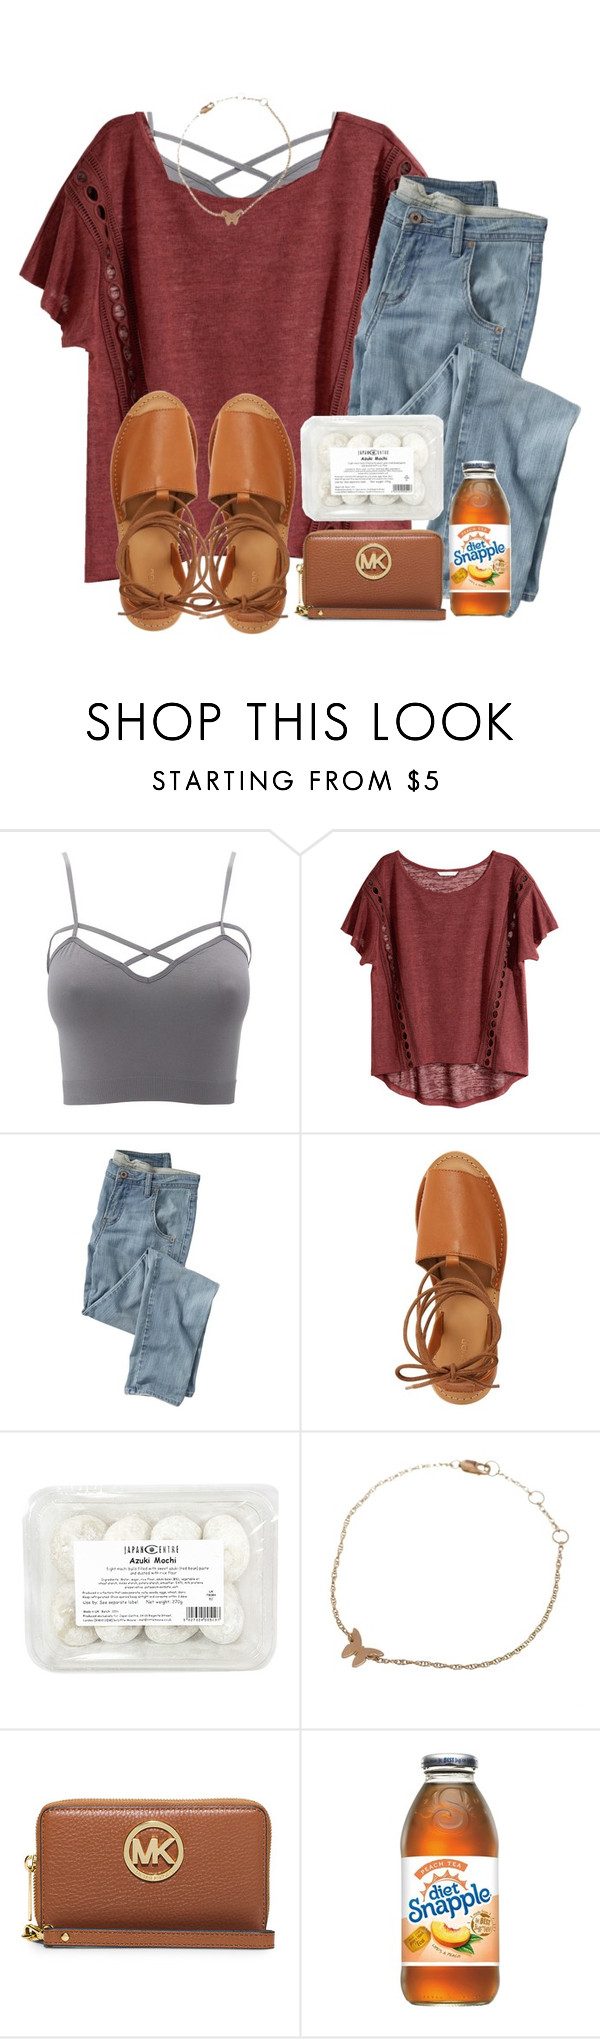 """""""tea or coffee? comment"""" by madiweeksss ❤ liked on Polyvore featuring Charlotte Russe, H&M, Wrap, Topshop, Jennifer Zeuner, MICHAEL Michael Kors and plus size clothing"""